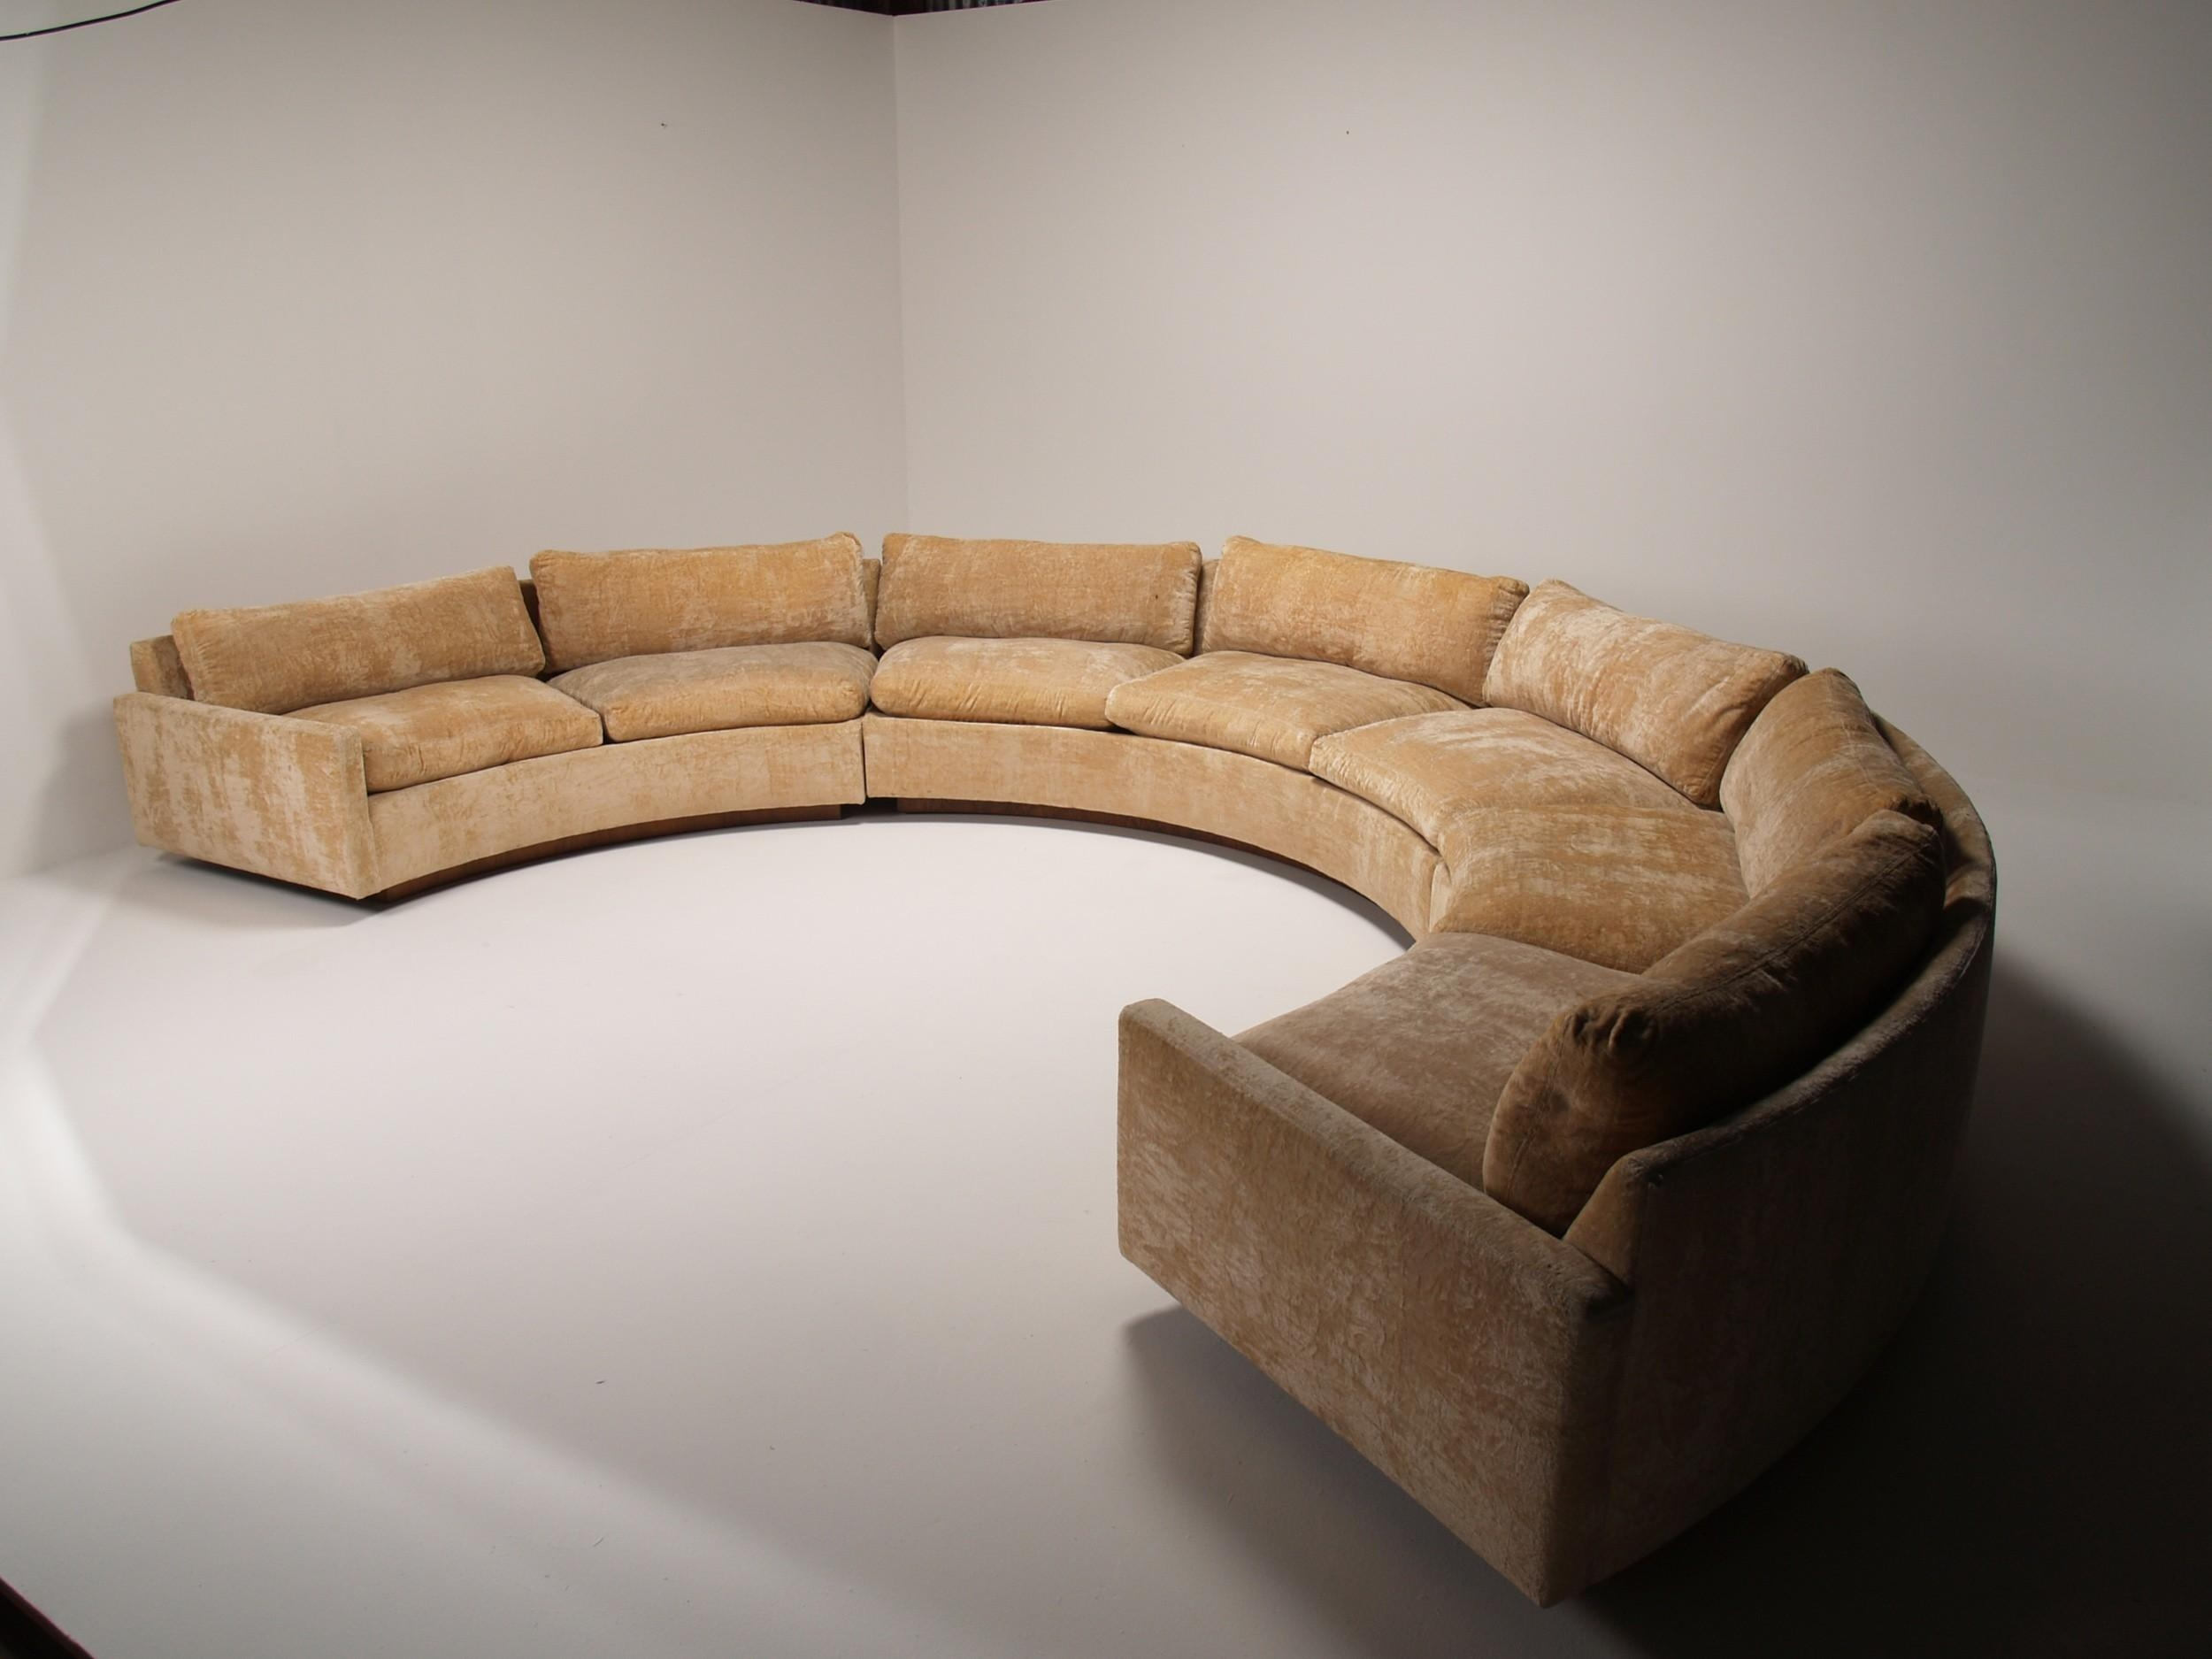 Furniture: Luxury Curved Sectional Sofa For Living Room Furniture Inside Leather Curved Sectional (Image 11 of 20)